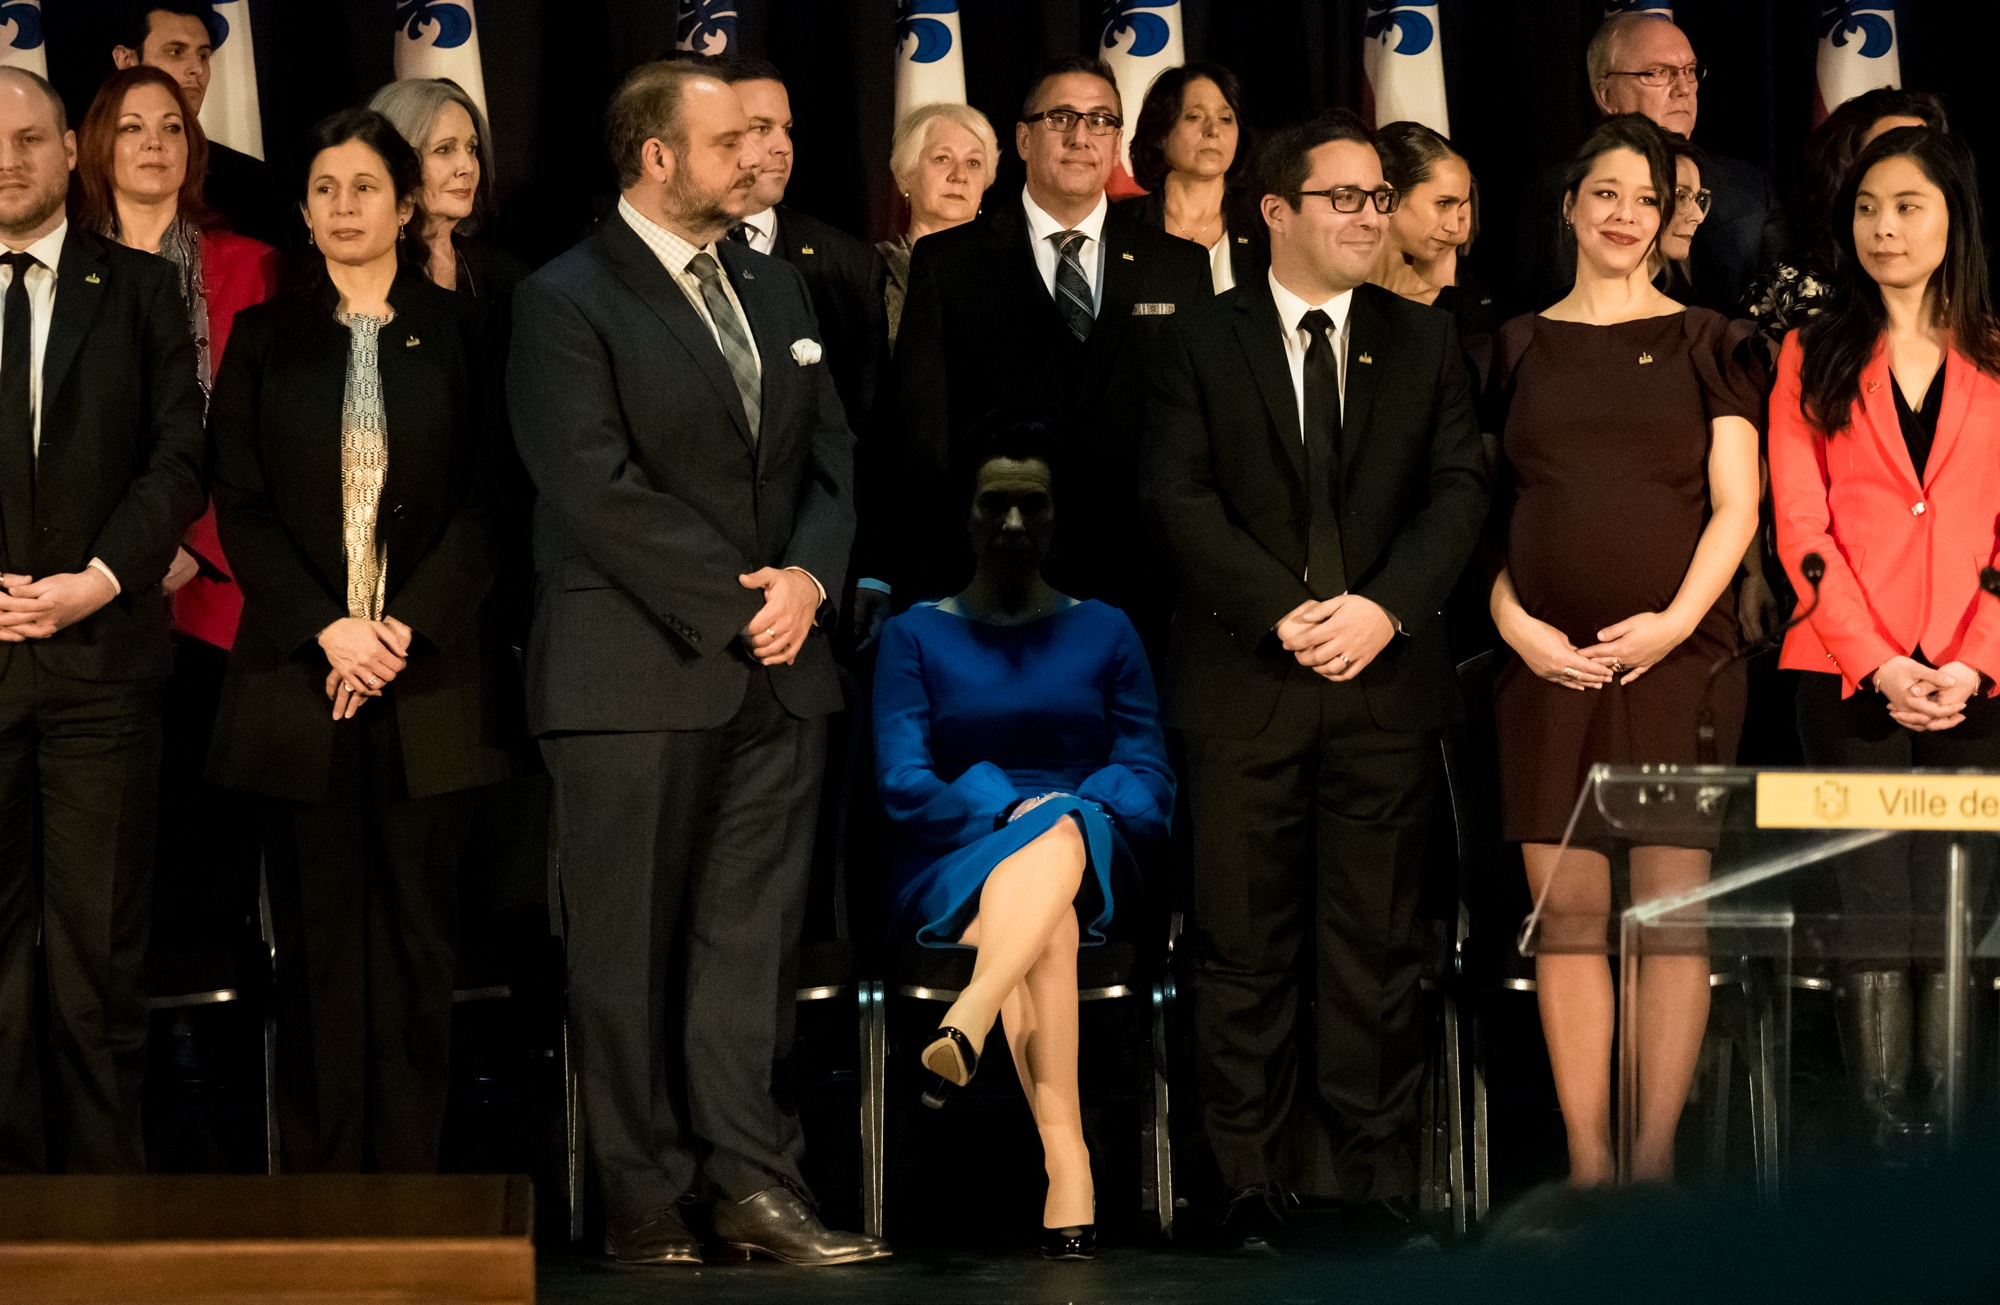 The team of Valérie Plante is sworn in turn